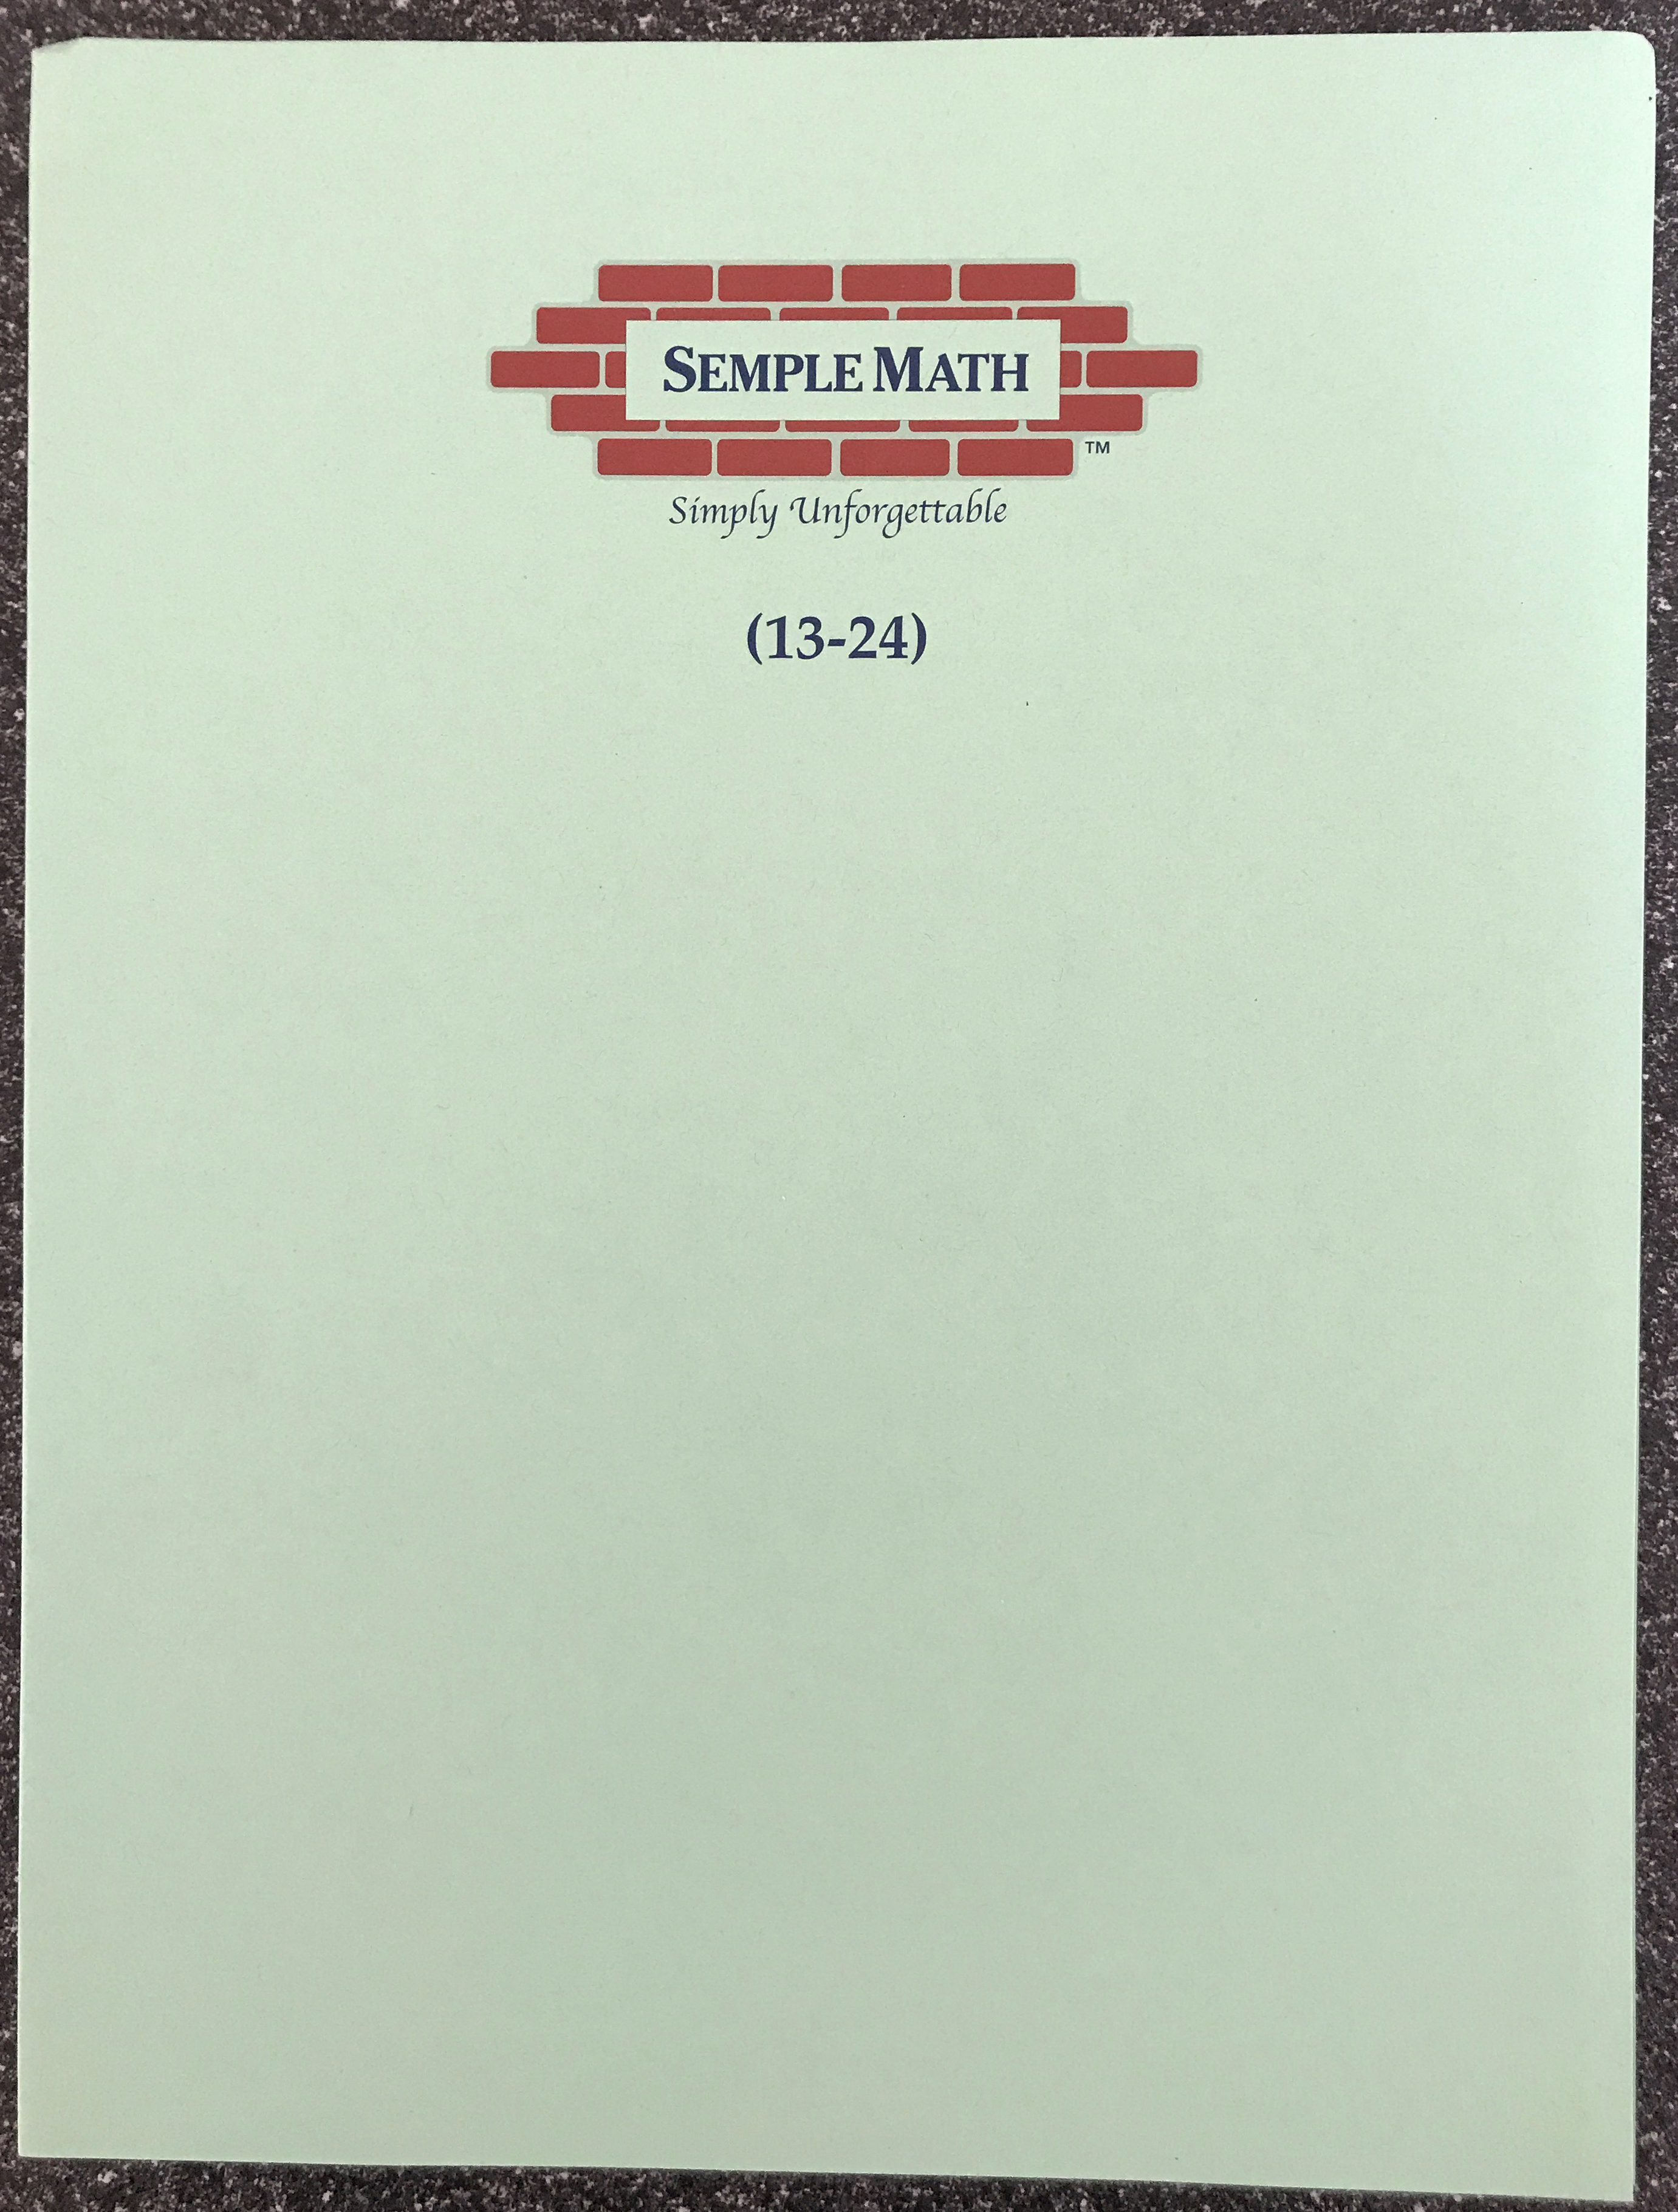 Extra Level One Sheets, Lessons 13 thru 24 – Semple Math